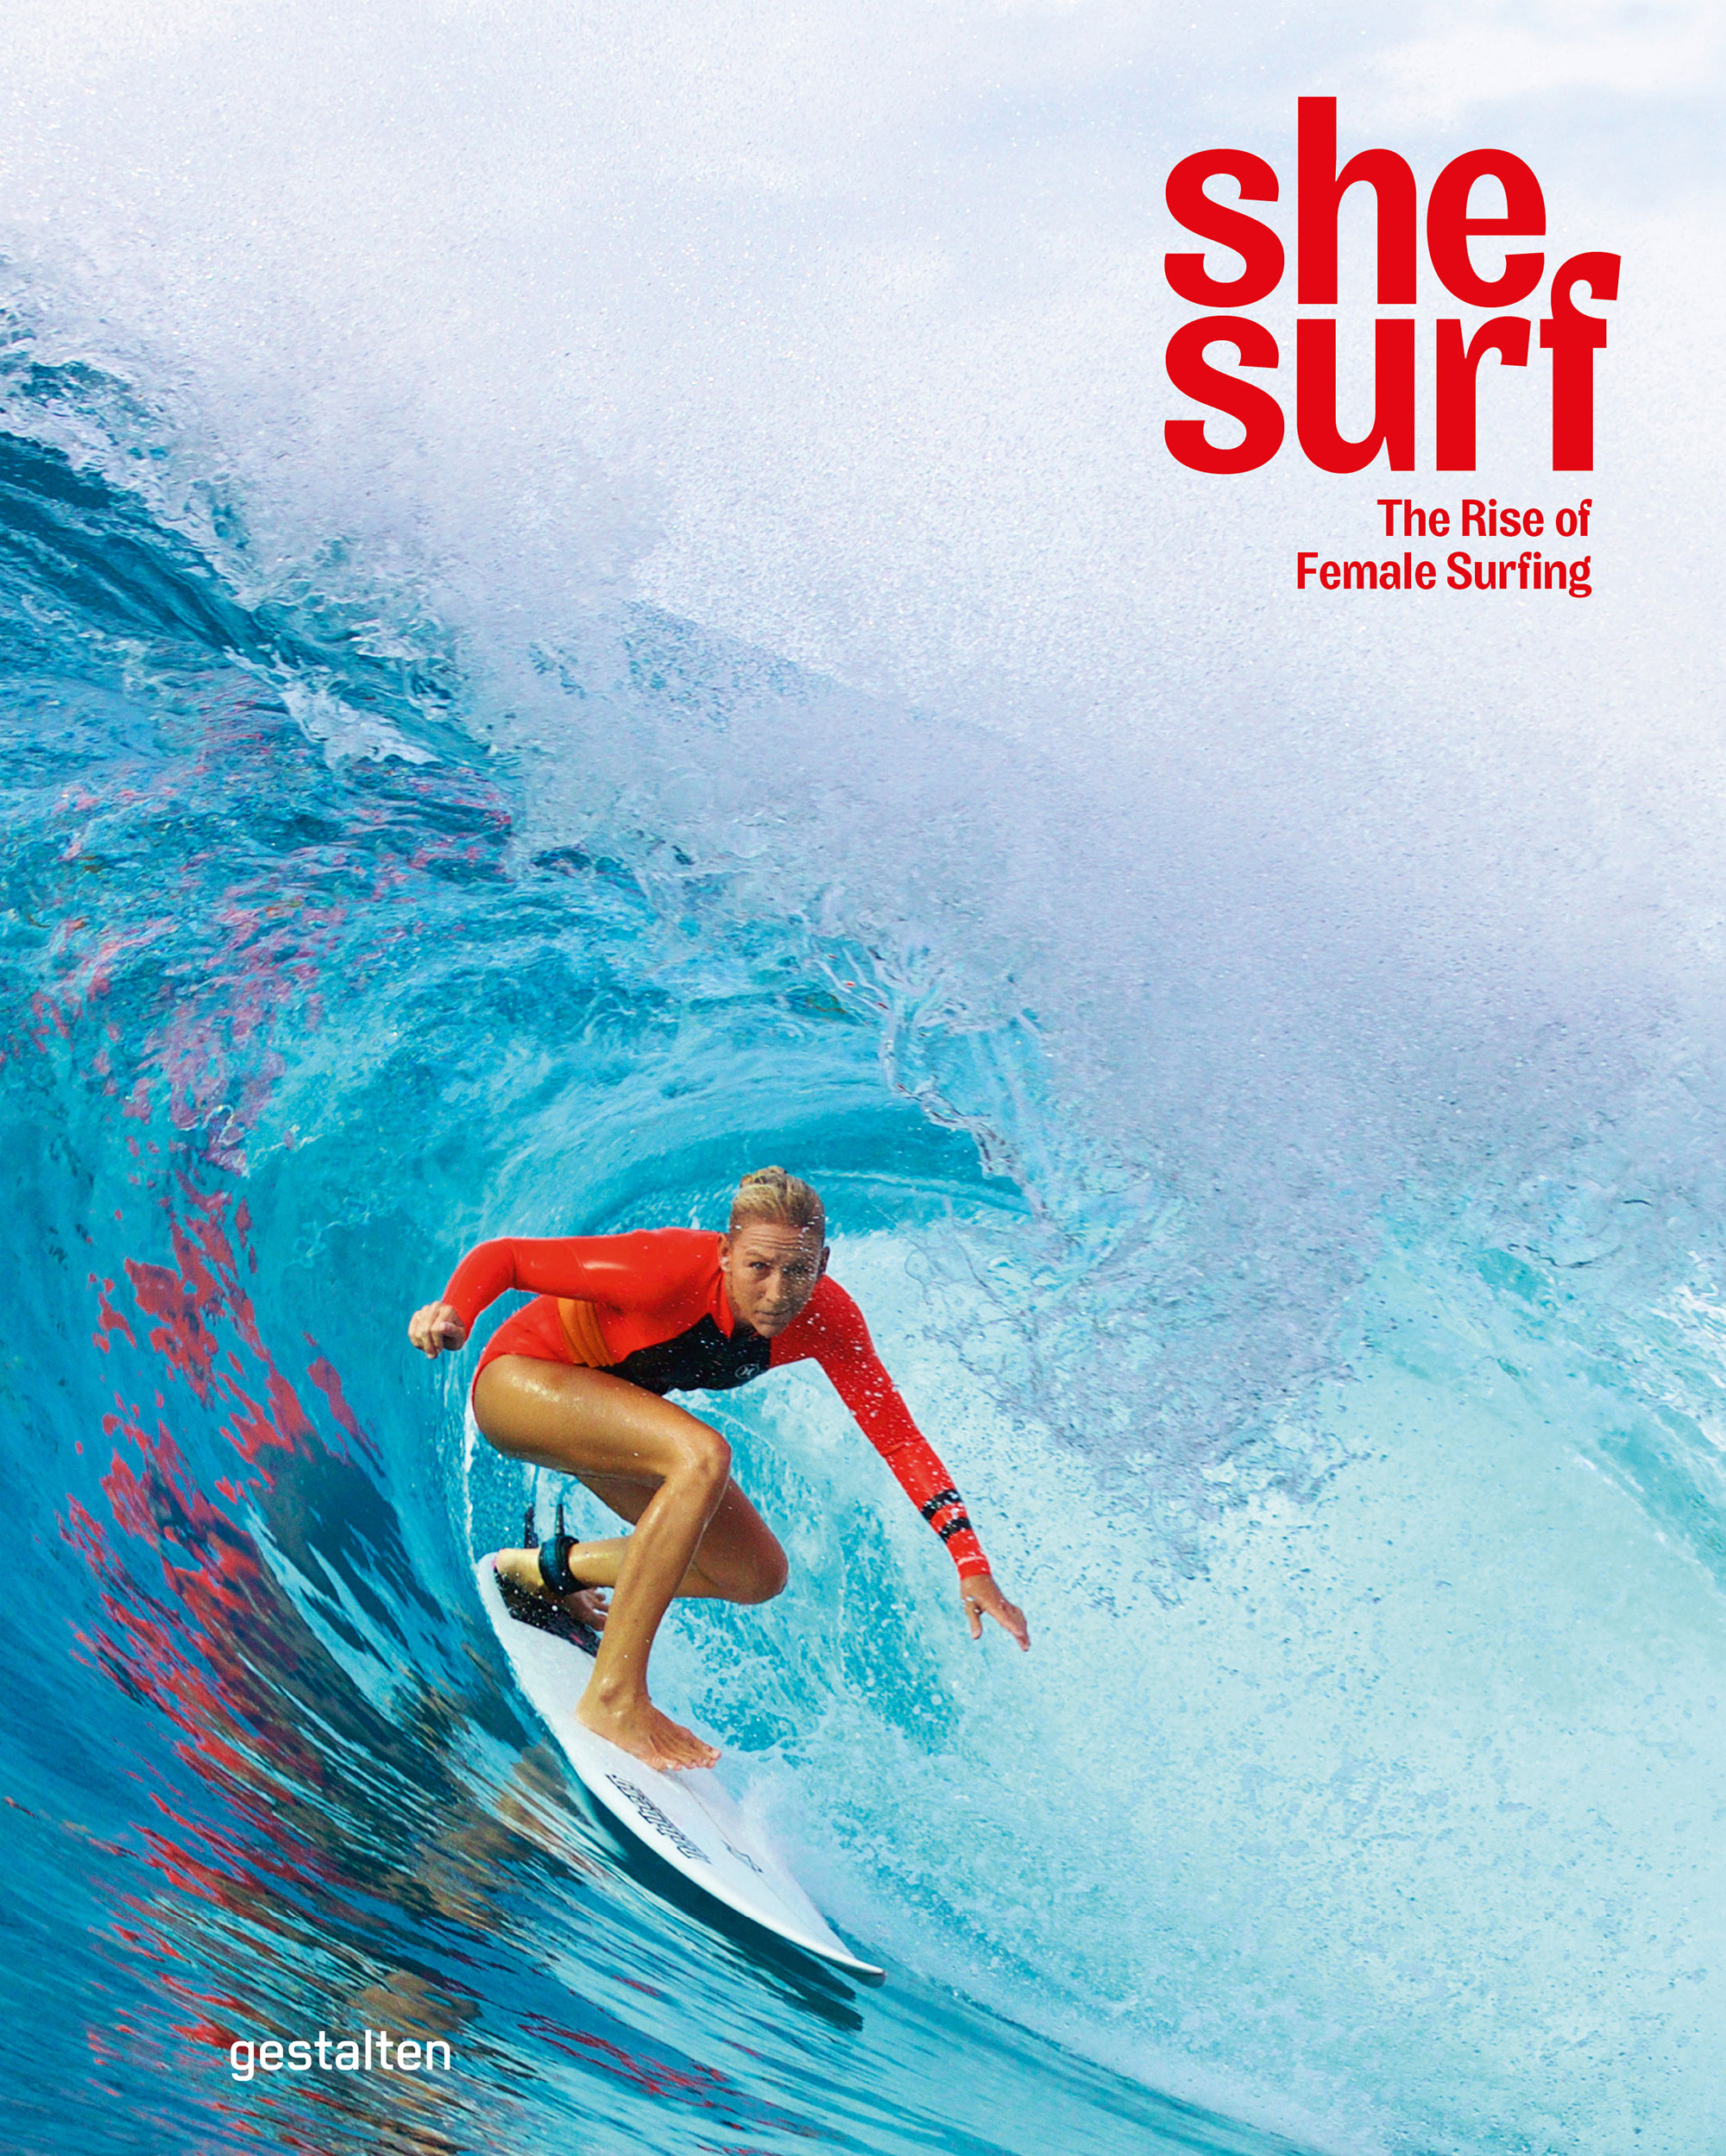 A 250-page look at the past, present and future of women's surf culture